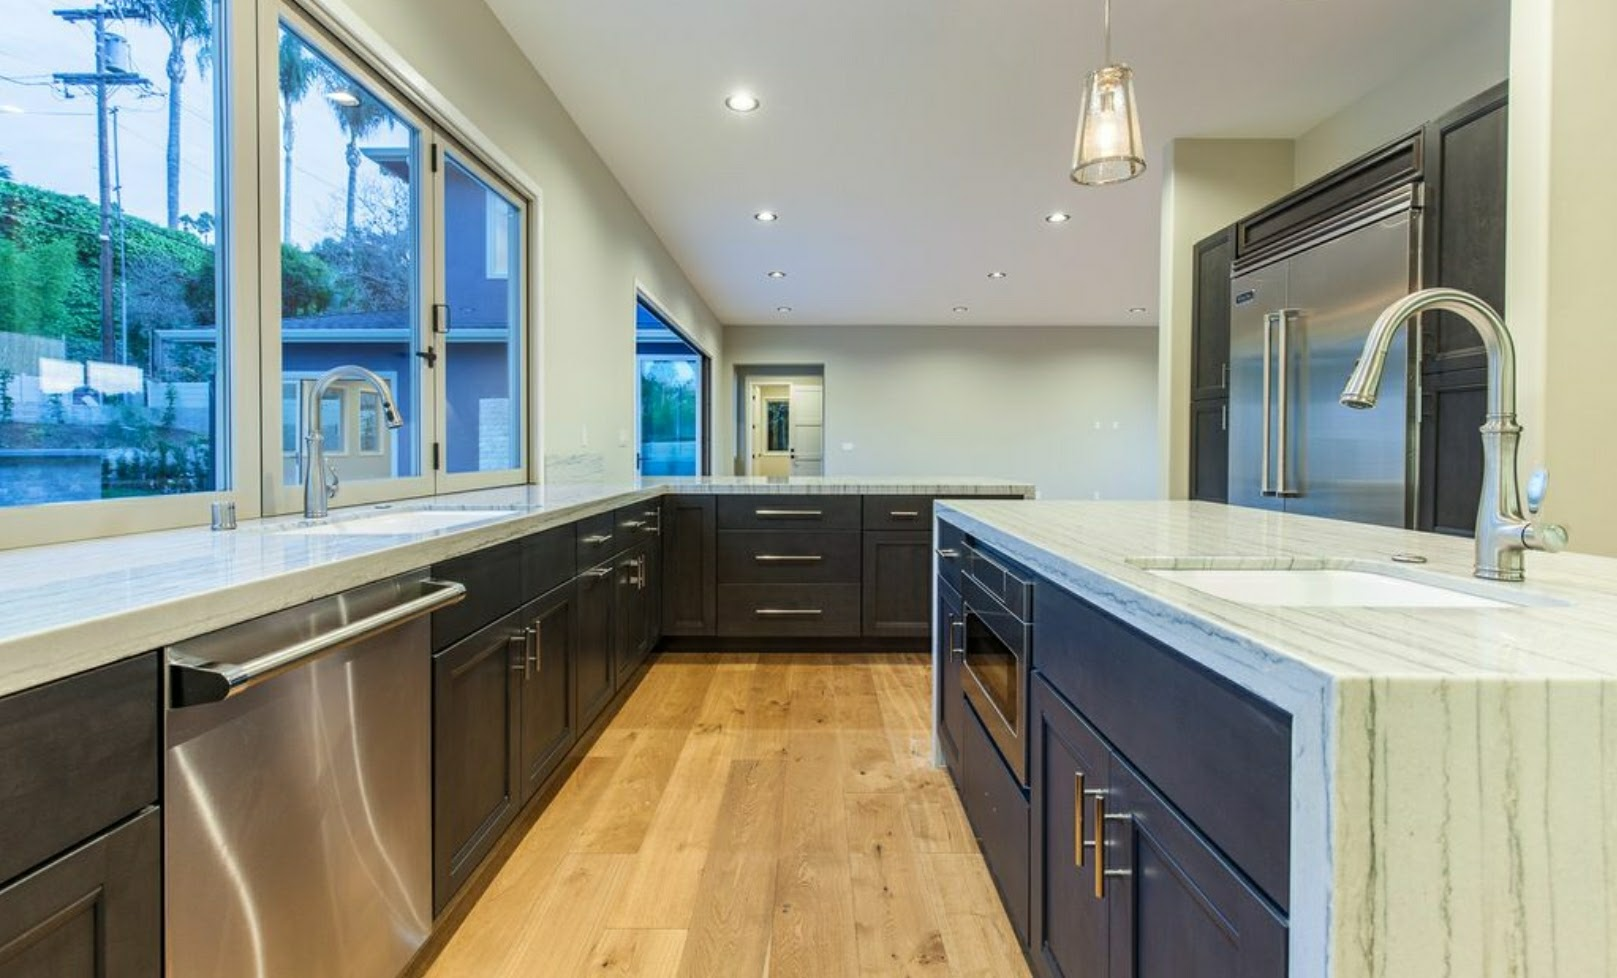 kitchen cabinets san diego. All Cabinets include  Kitchen San Diego Cabinet Makers Carlsbad CA